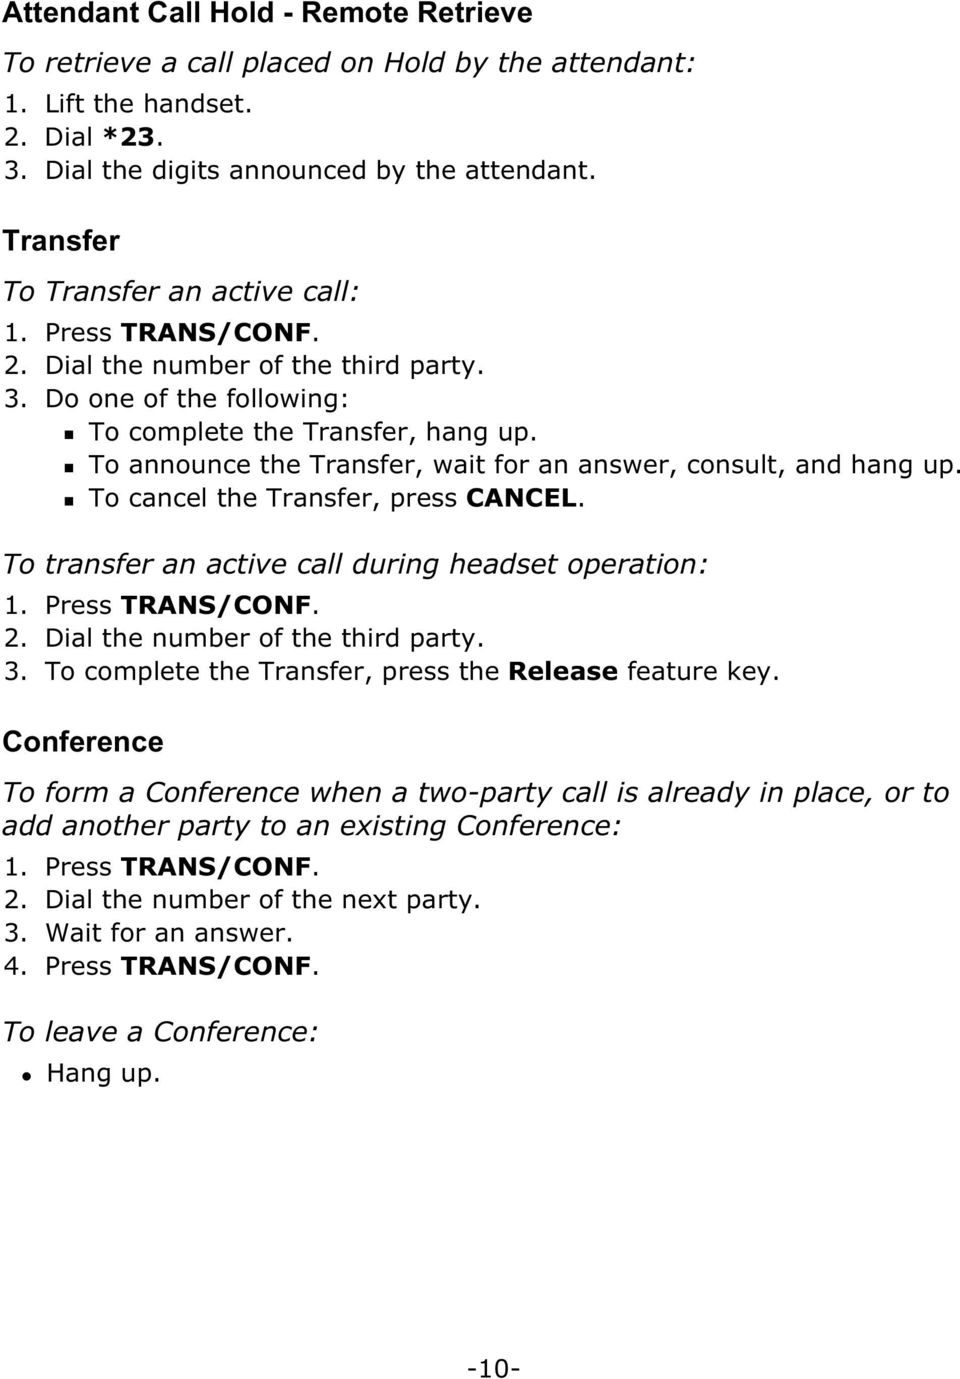 To cancel the Transfer, press CANCEL. To transfer an active call during headset operation: 1. Press TRANS/CONF. 2. Dial the number of the third party. 3.